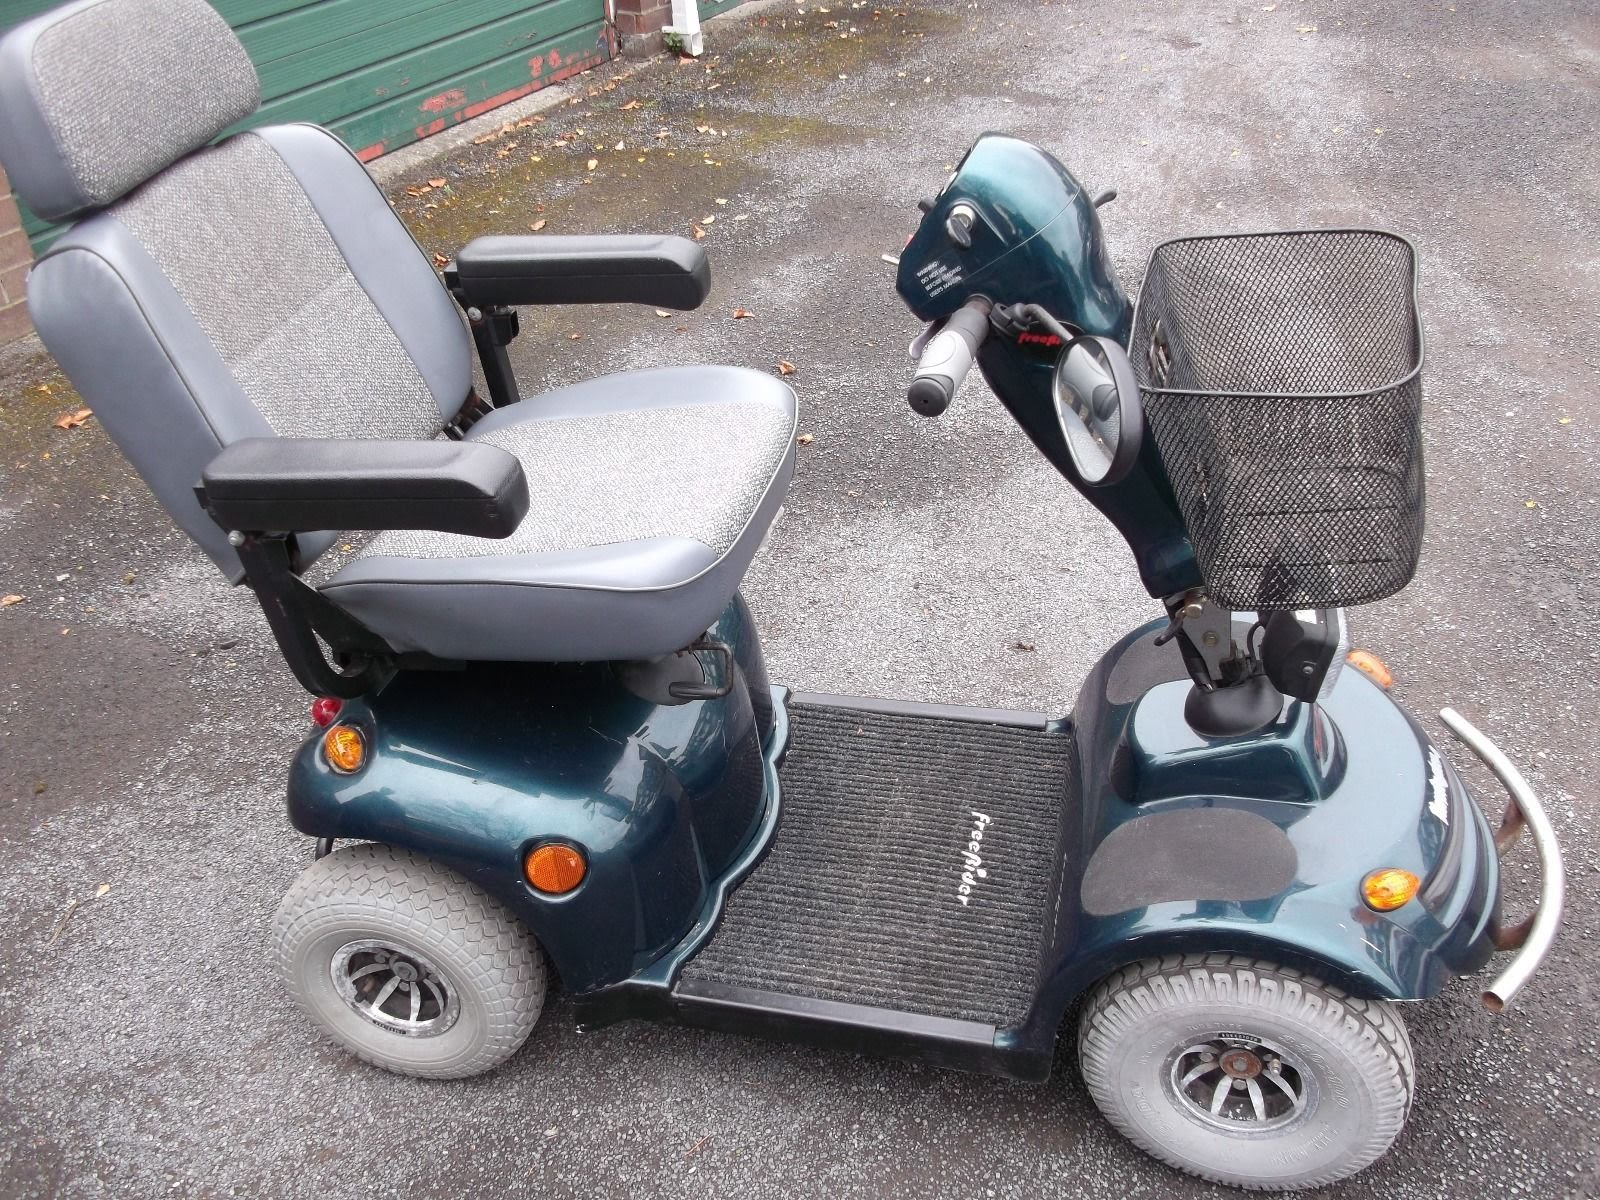 Used Mobility Scooter Near Me Used Mobility Scooters For Sale On